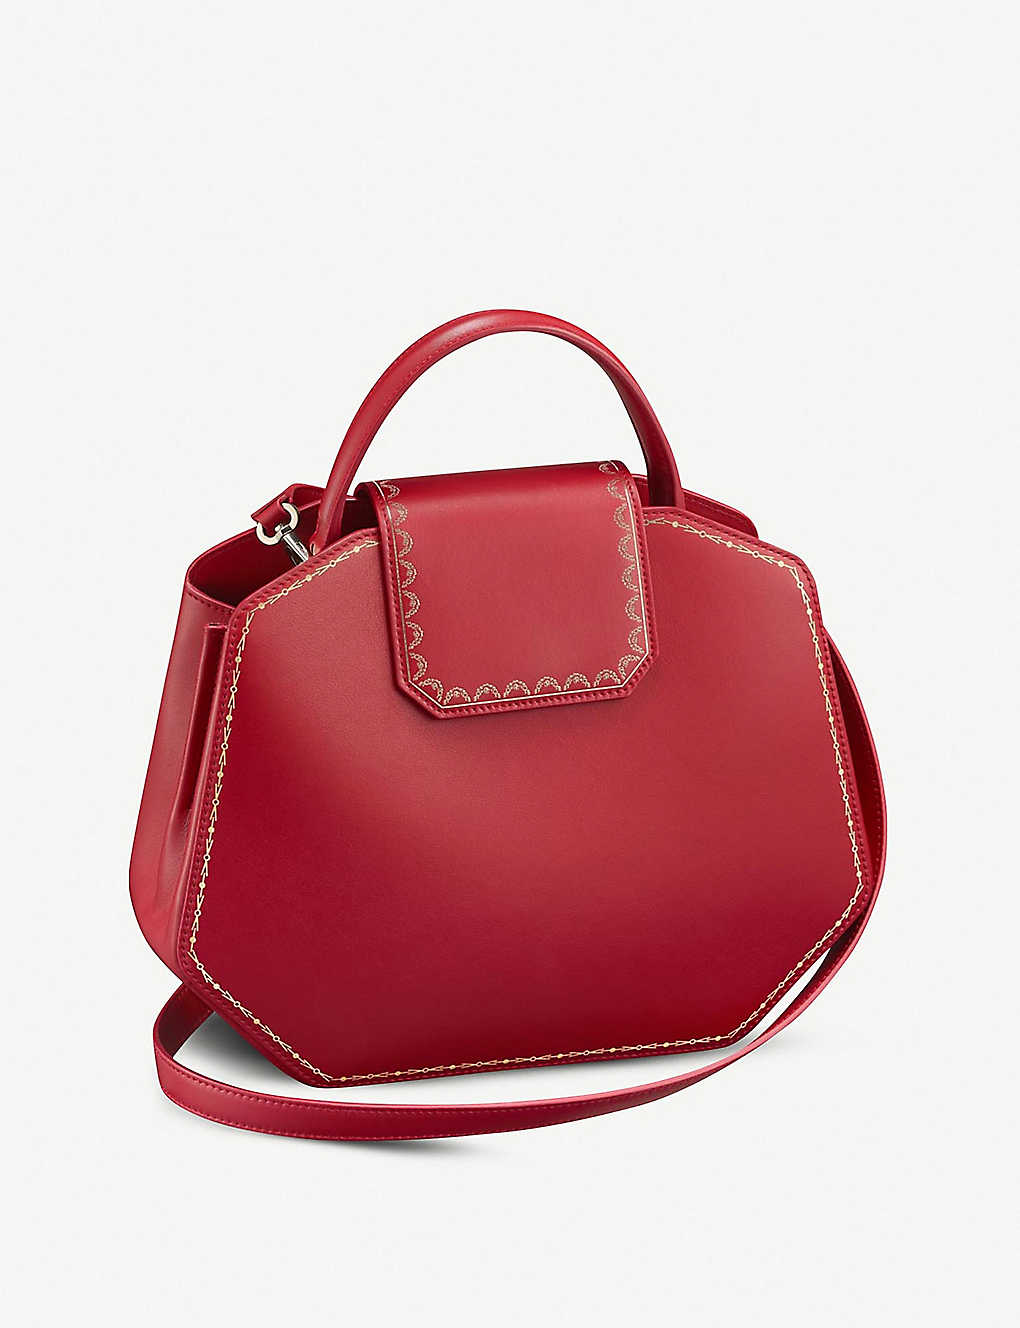 CARTIER: Guirlande de Cartier small leather handbag